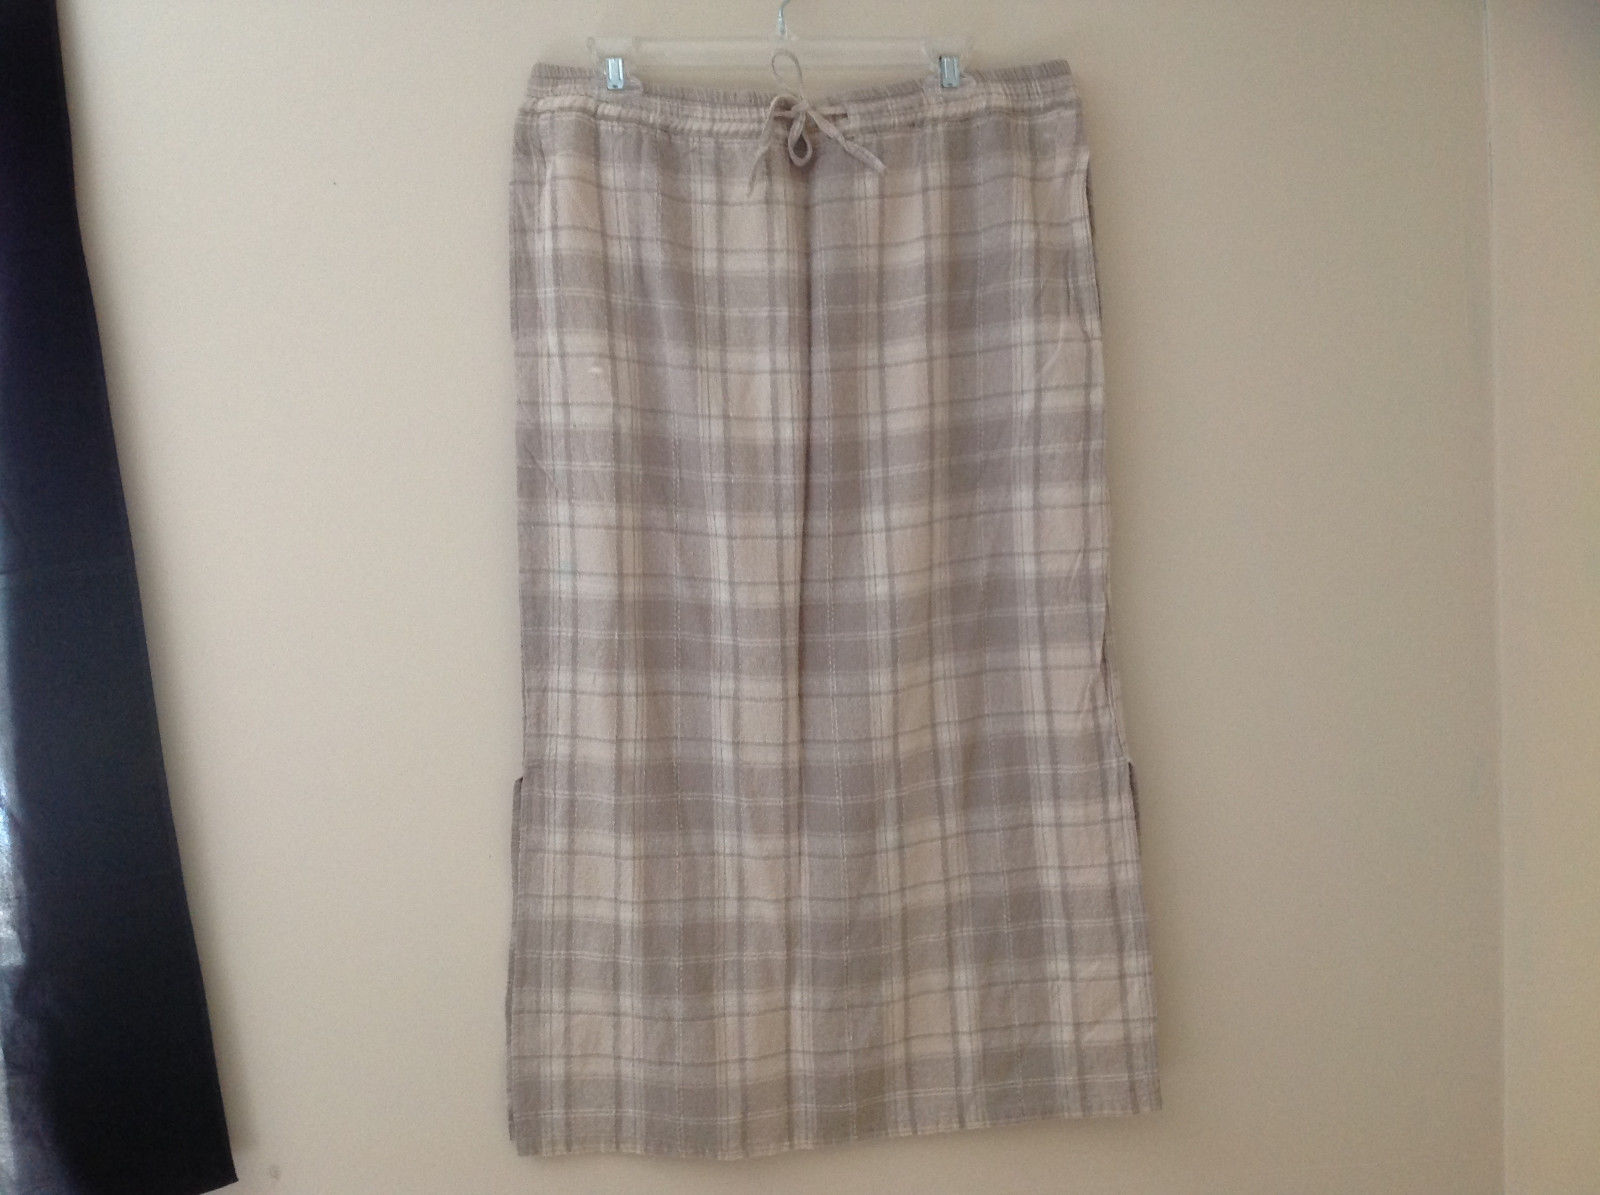 Fashion Bug Tan Khaki Plaid Tie Waistband Calf Length Skirt Pockets Size XL